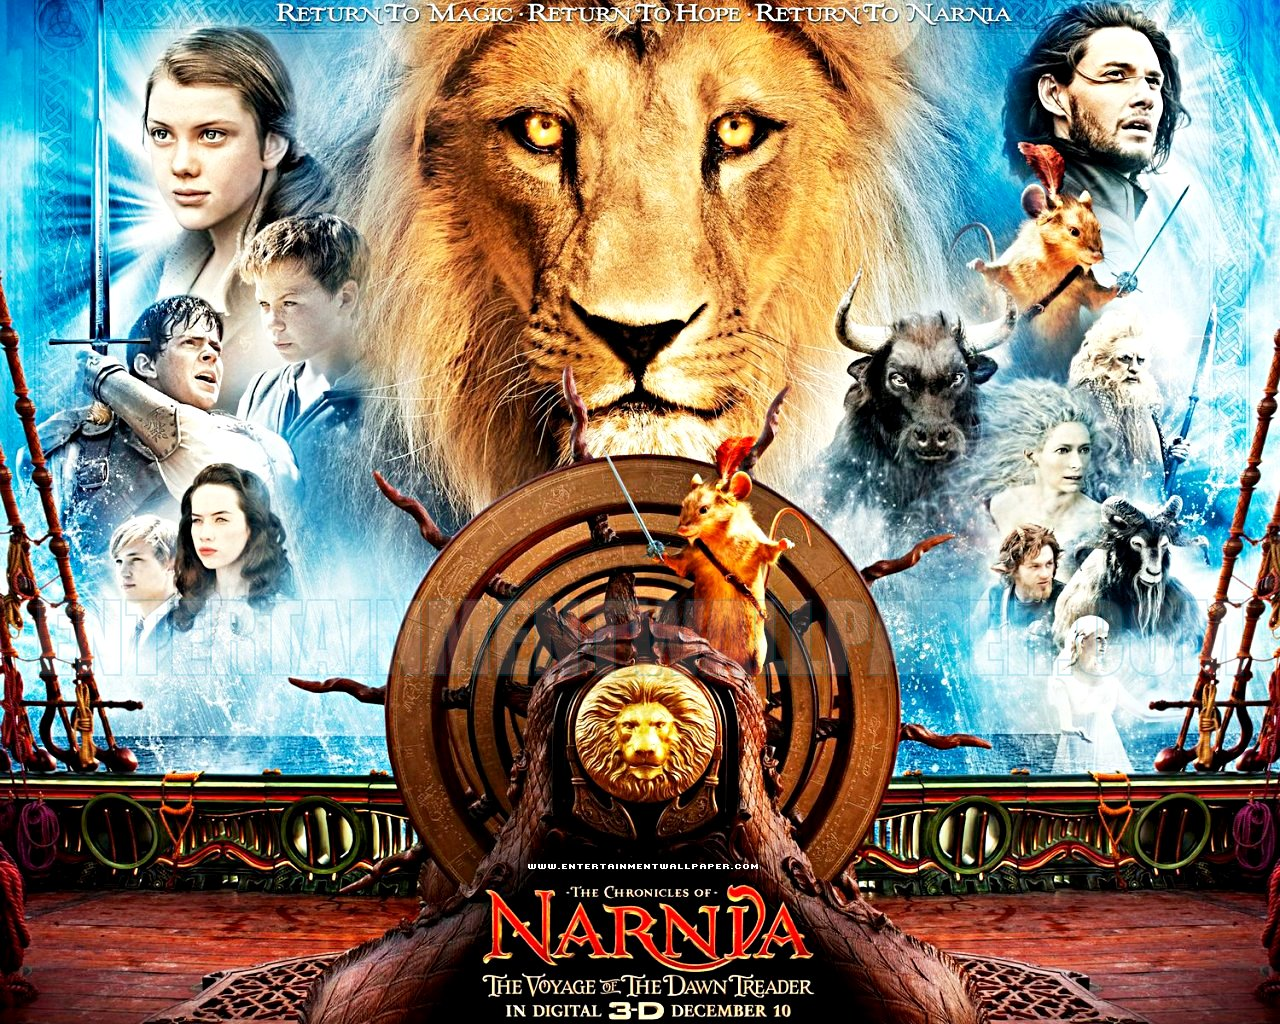 1280x1024 - The Chronicles of Narnia: The Voyage of the Dawn Treader Wallpapers 17